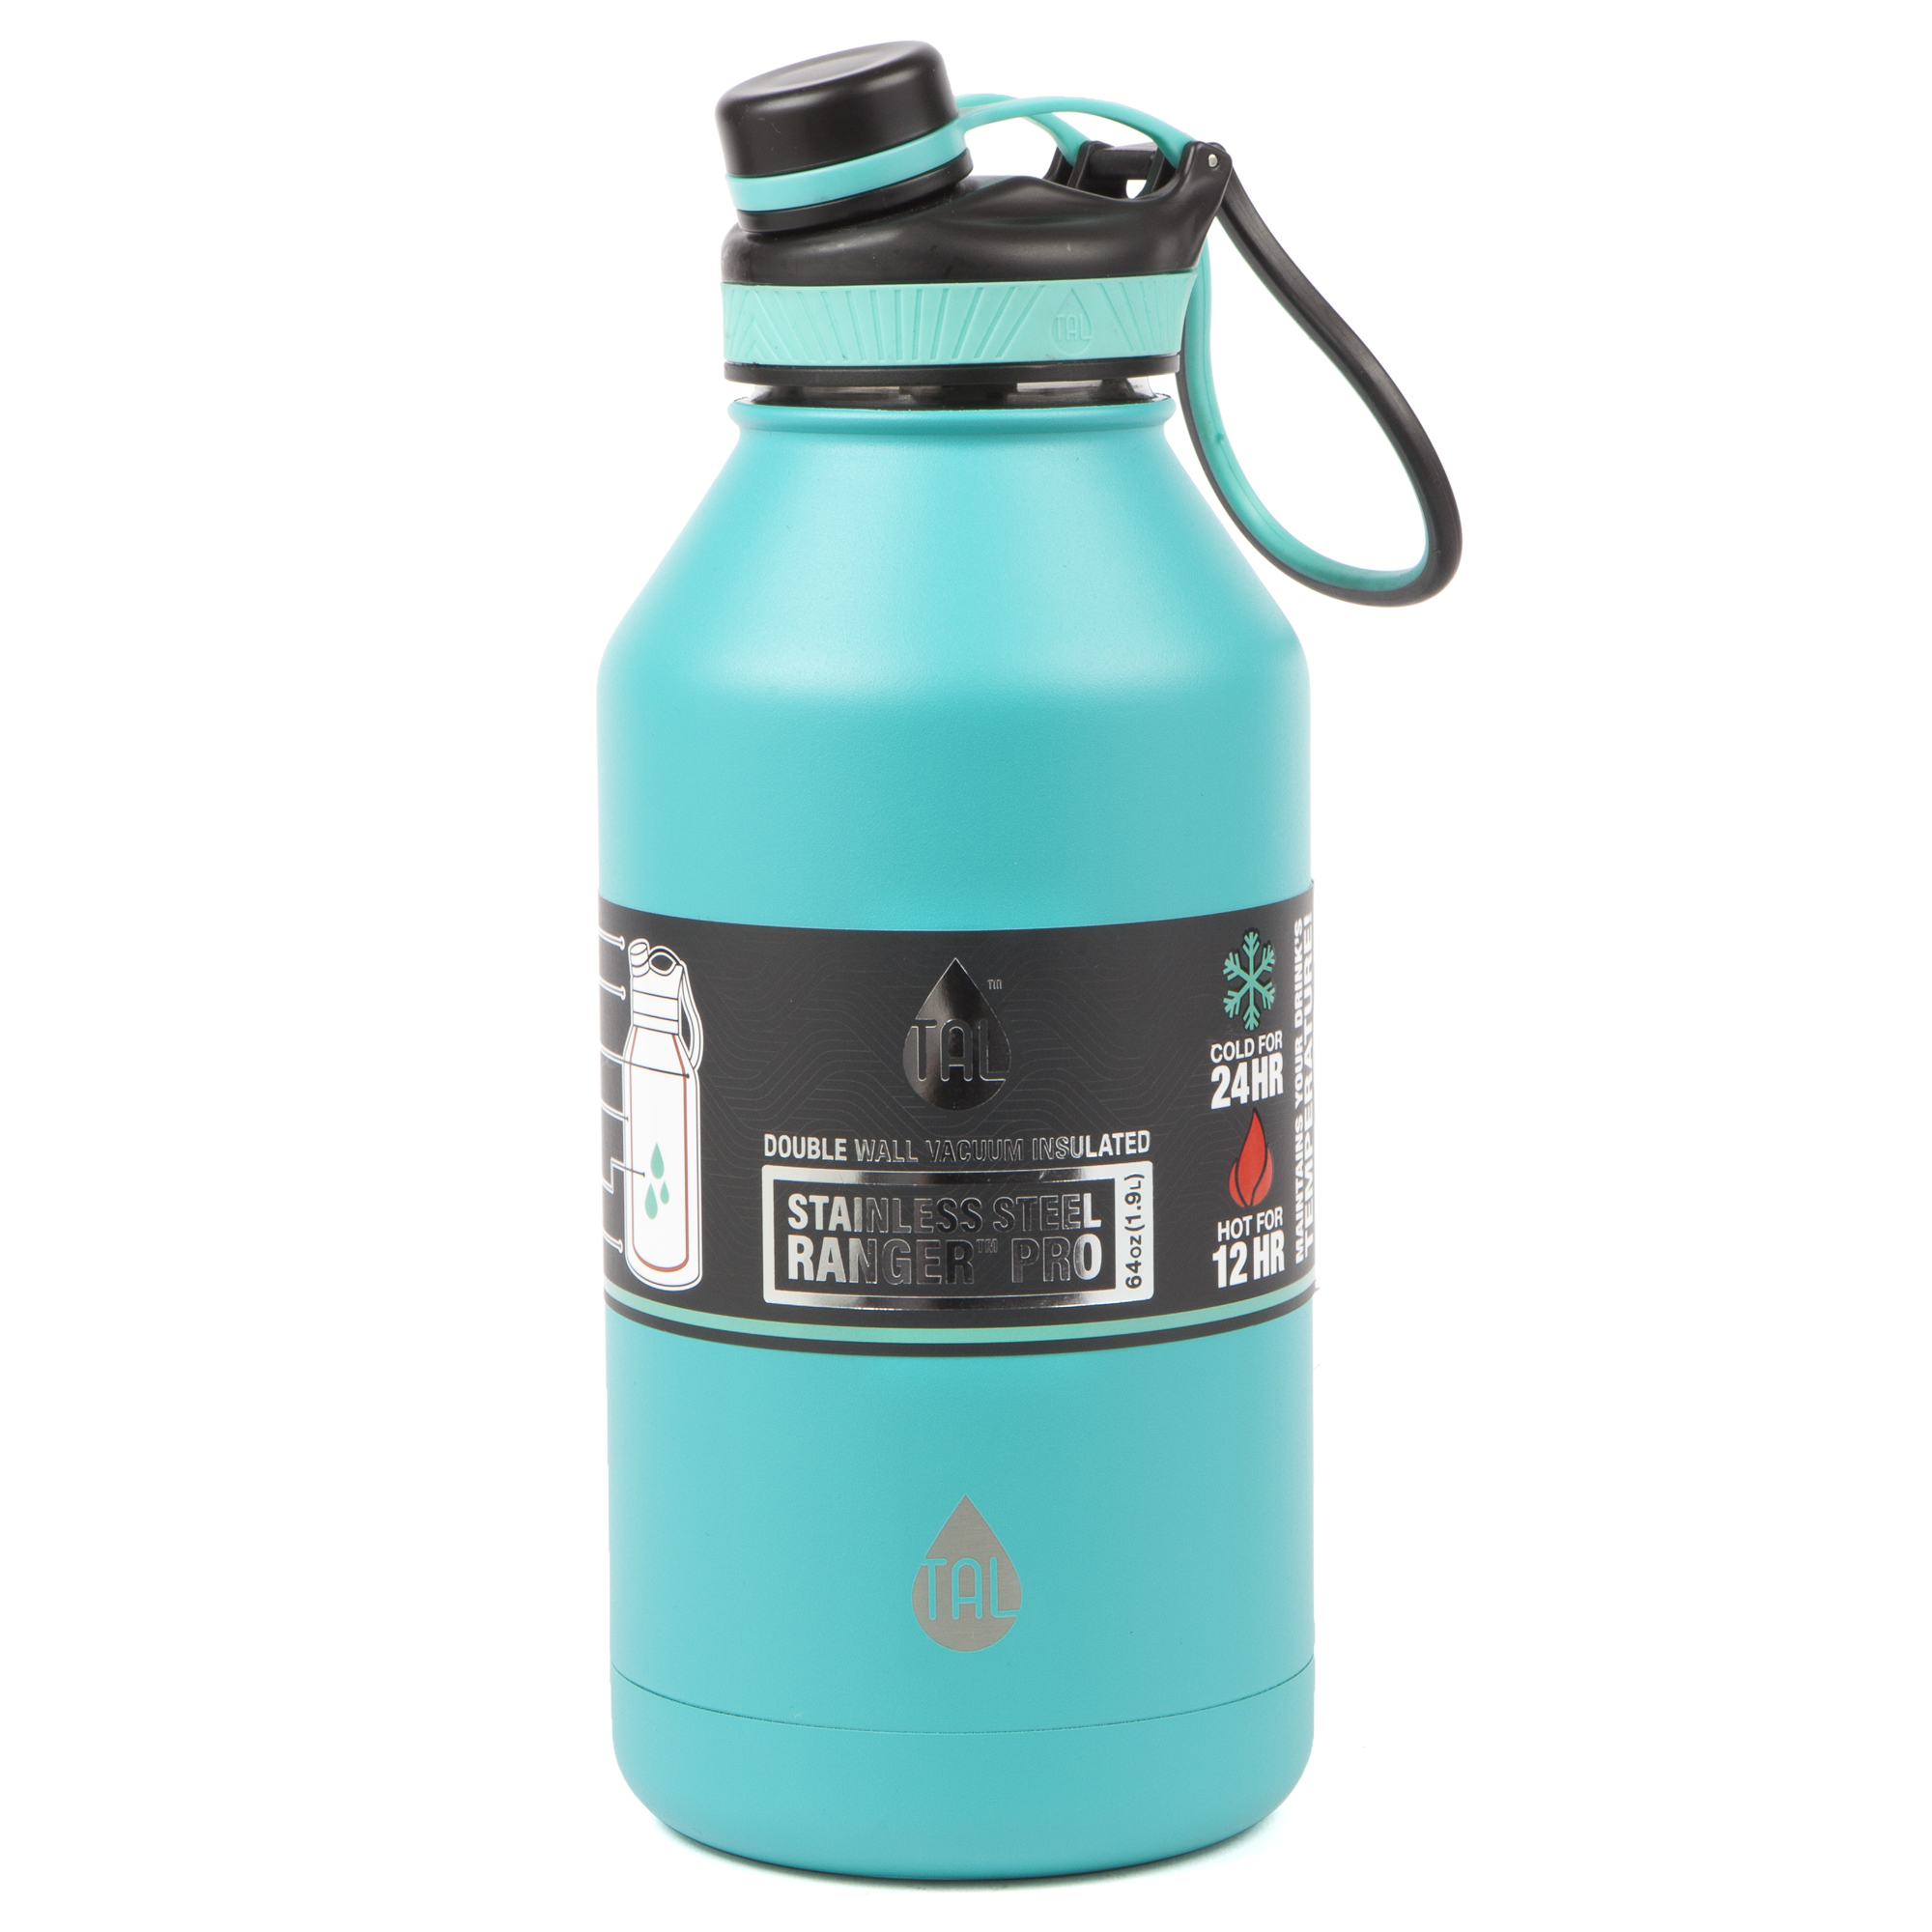 eb6c60f706 TAL 64oz Insulated Stainless Steel Ranger™ Pro Water Bottle, Red -  Walmart.com